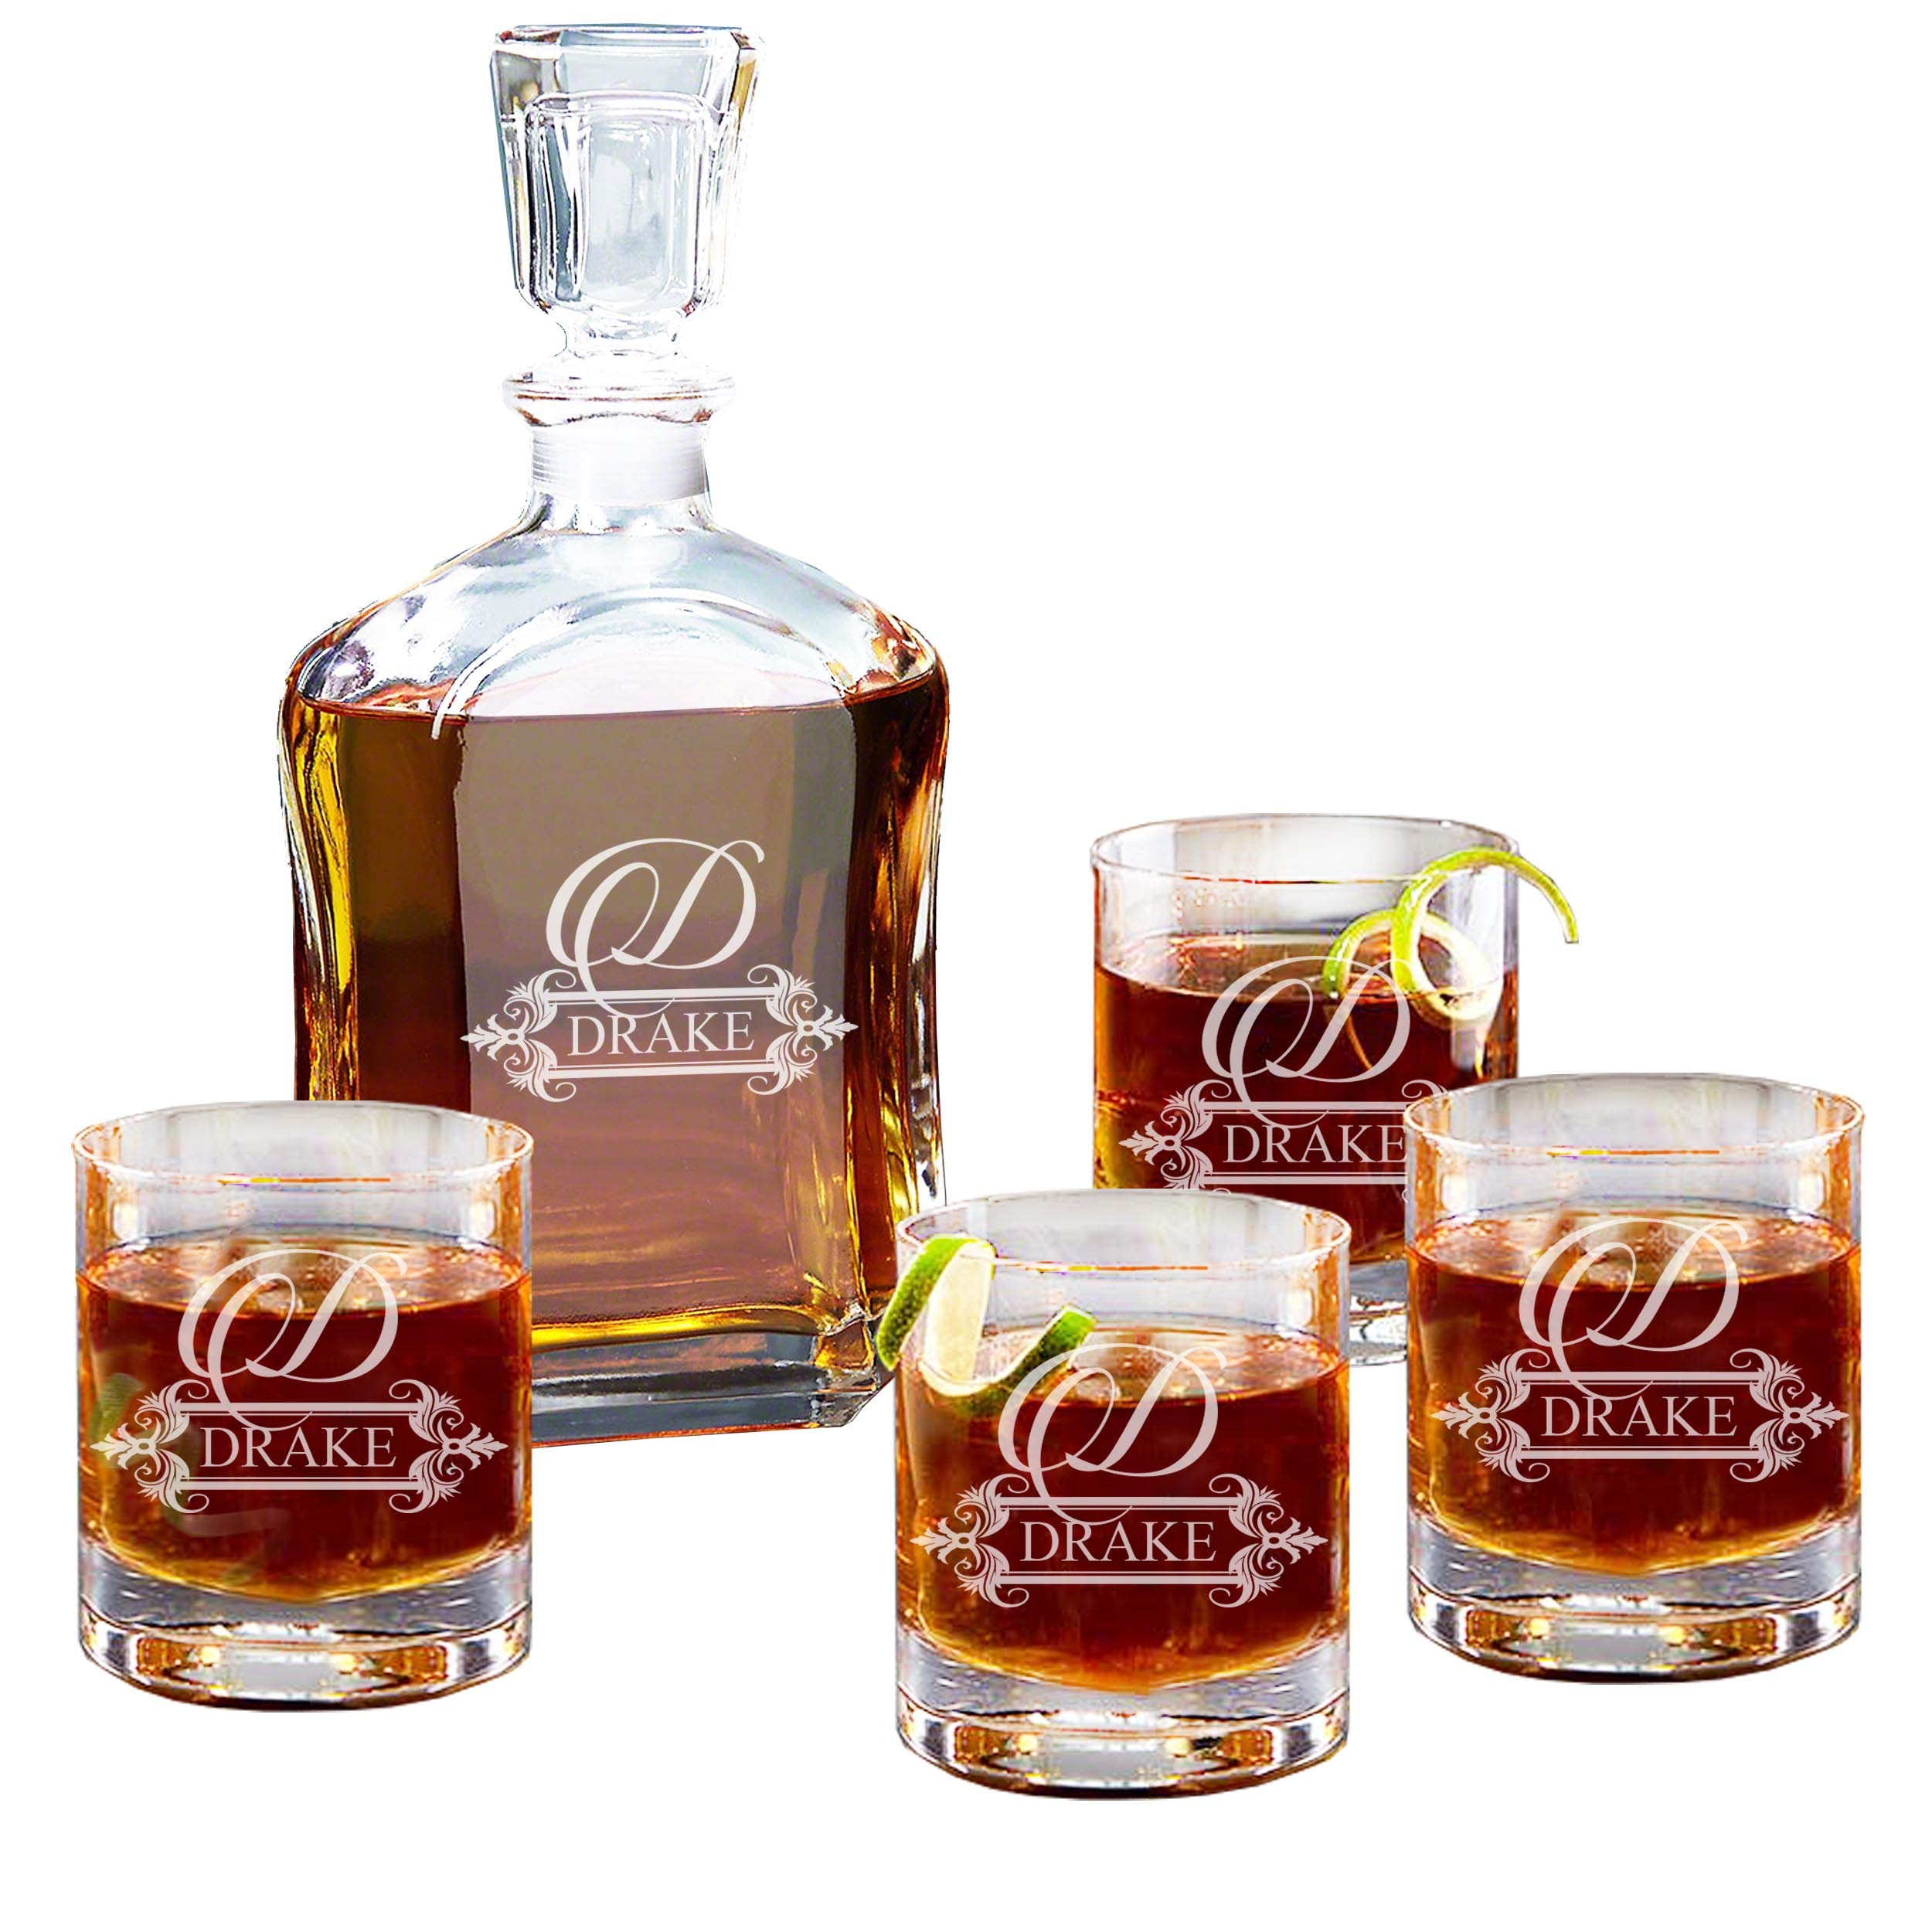 Personalized 5 pc Whiskey Decanter Set - Decanter and 4 Glasses Gift Set - Custom Engraved with Fancy Design by My Personal Memories